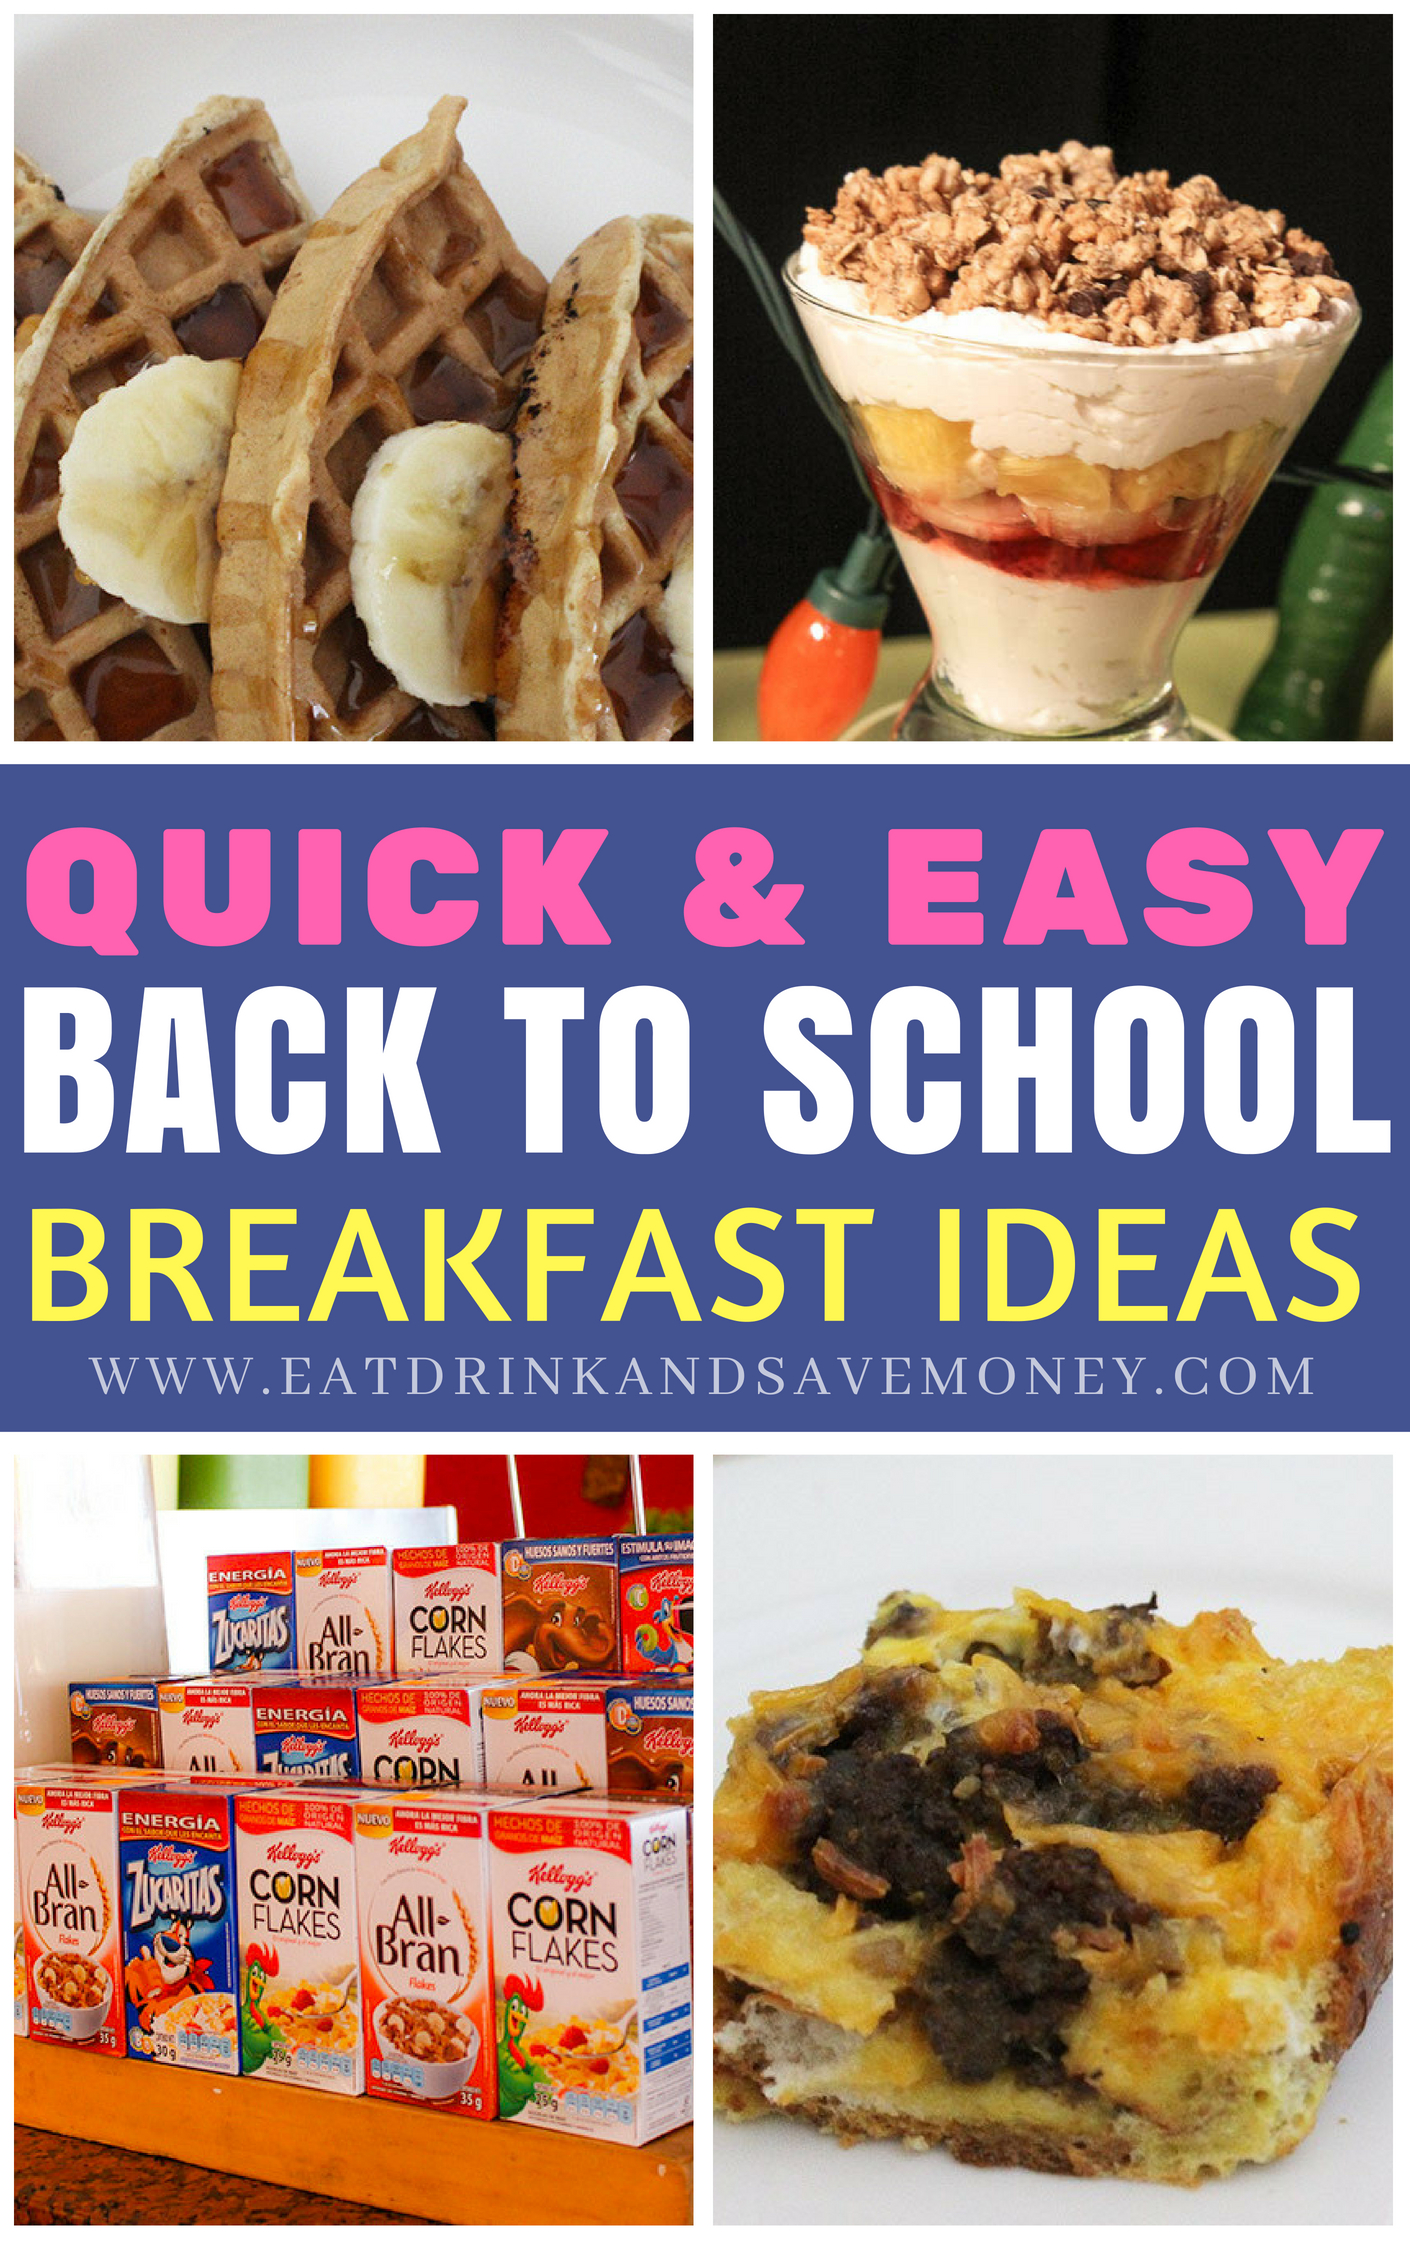 Quick and easy back to school breakfast ideas. Simple breakfast ideas. Easy breakfast ideas. #backtoschool #breakfast #recipes #cooking #family